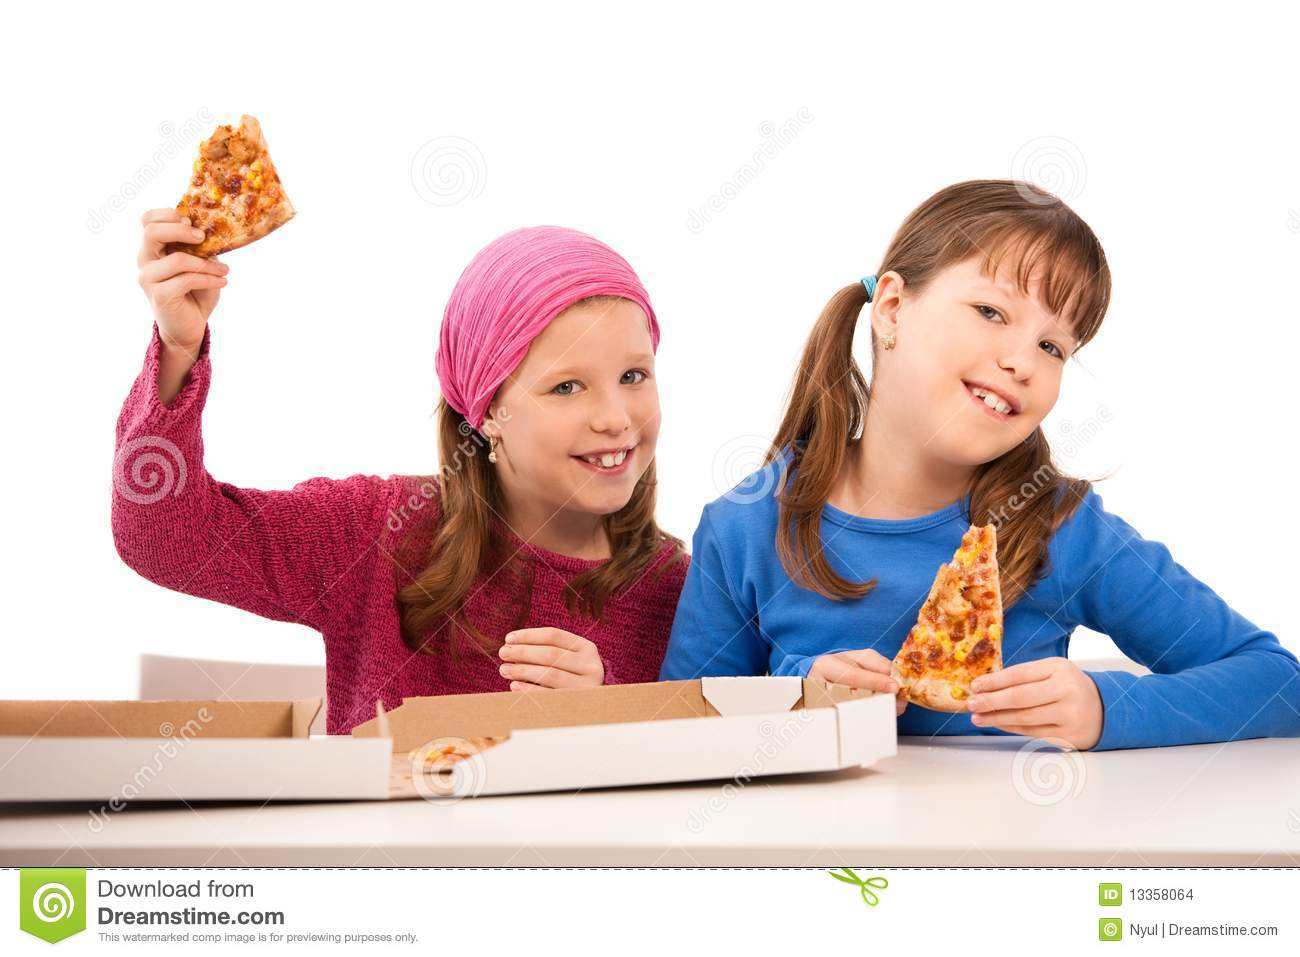 Girls with pizza